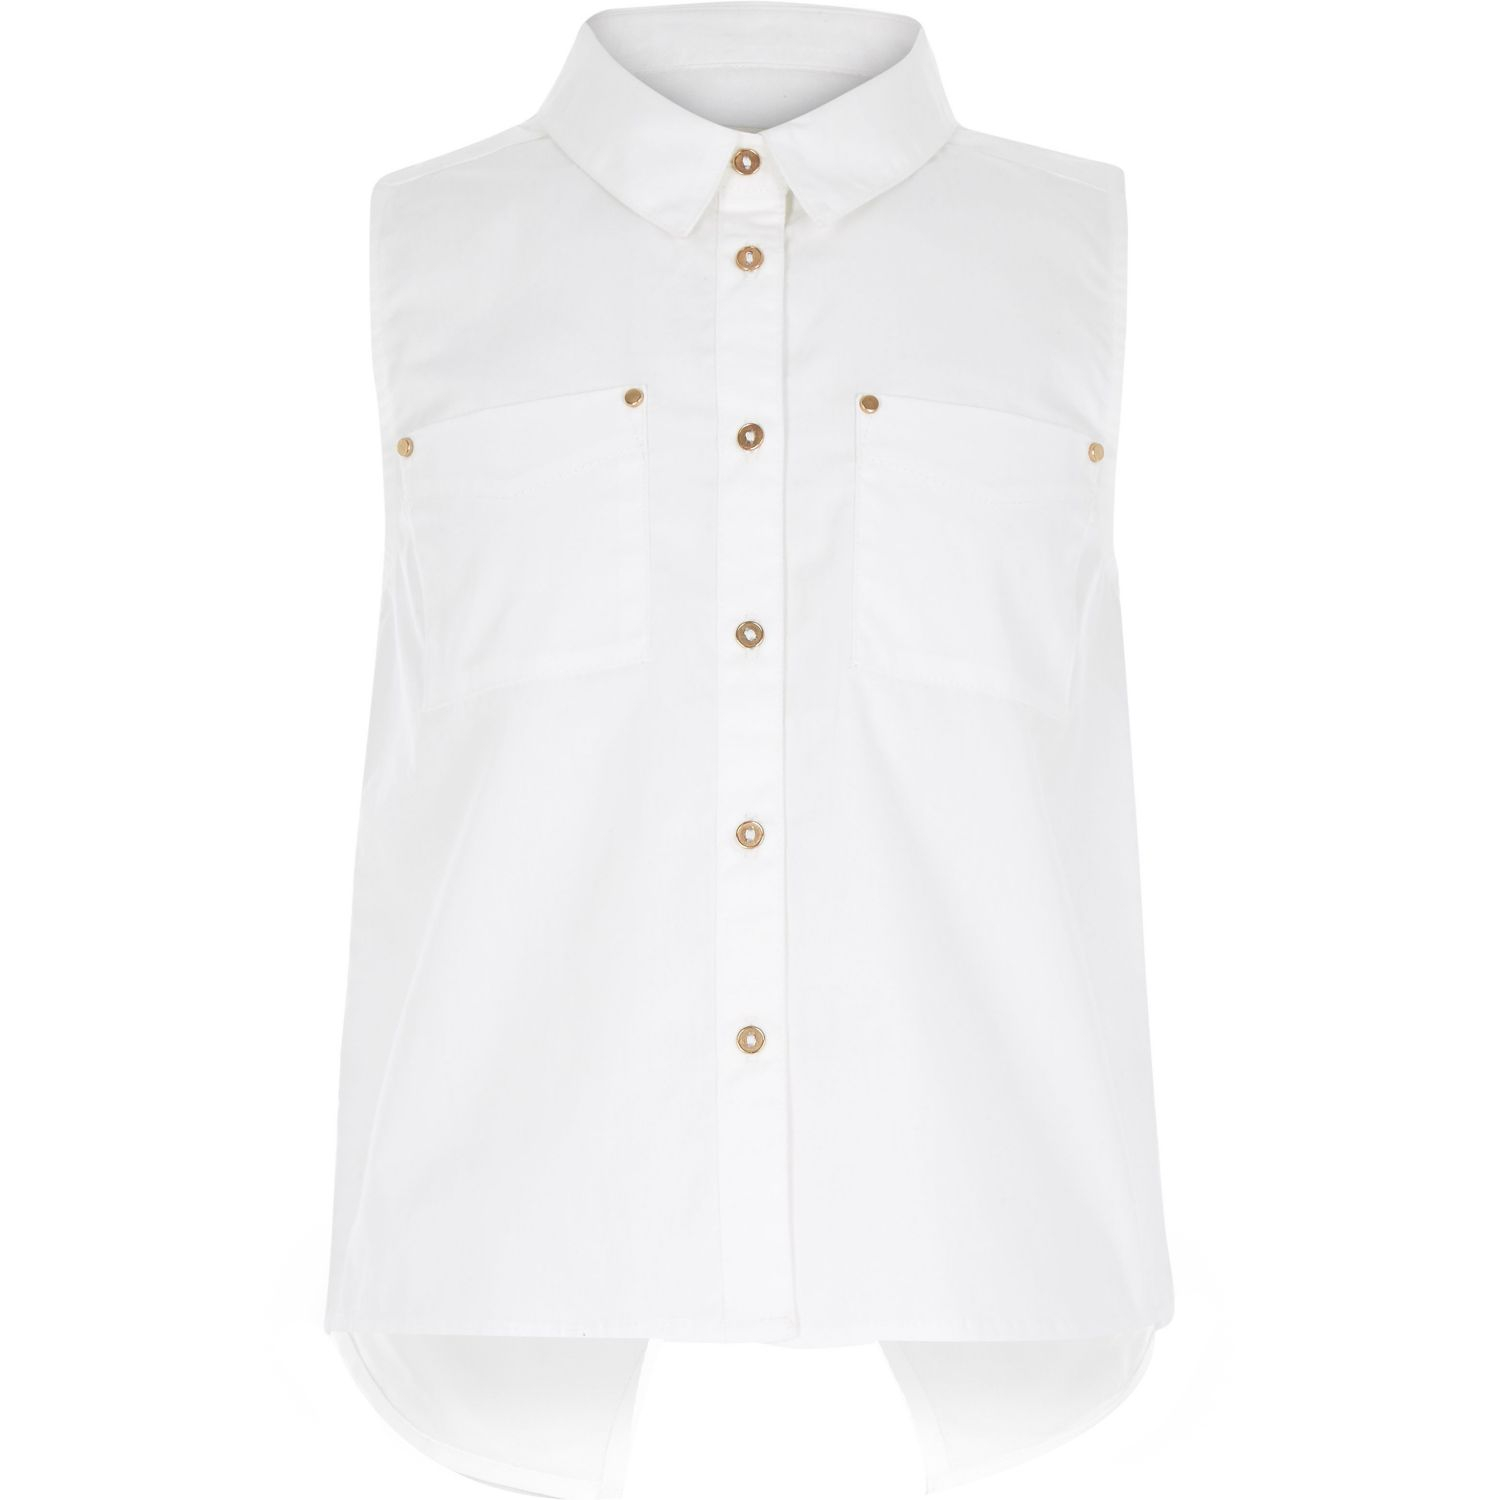 River island Girls White Sleeveless Shirt in White | Lyst